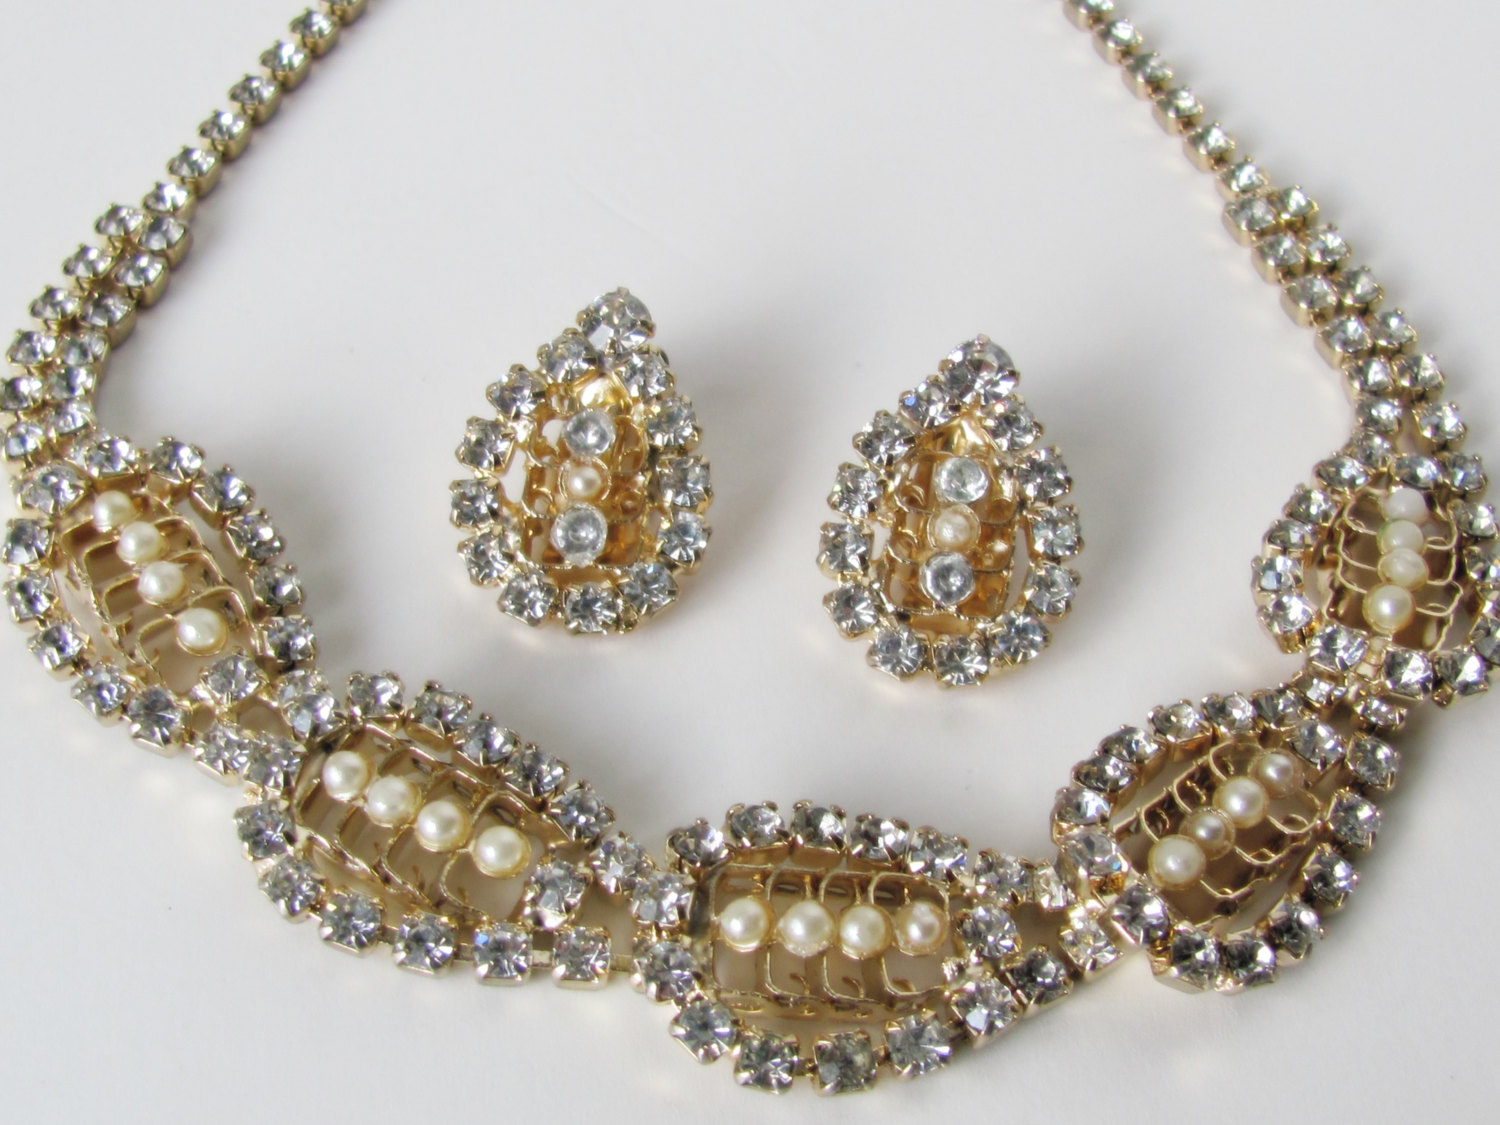 Vintage Bridal Set Vintage Jewelry Vintage Necklace Vintage Earrings Antique  Jewelry Rhinestone Jewelry Set Bridal Jewelry